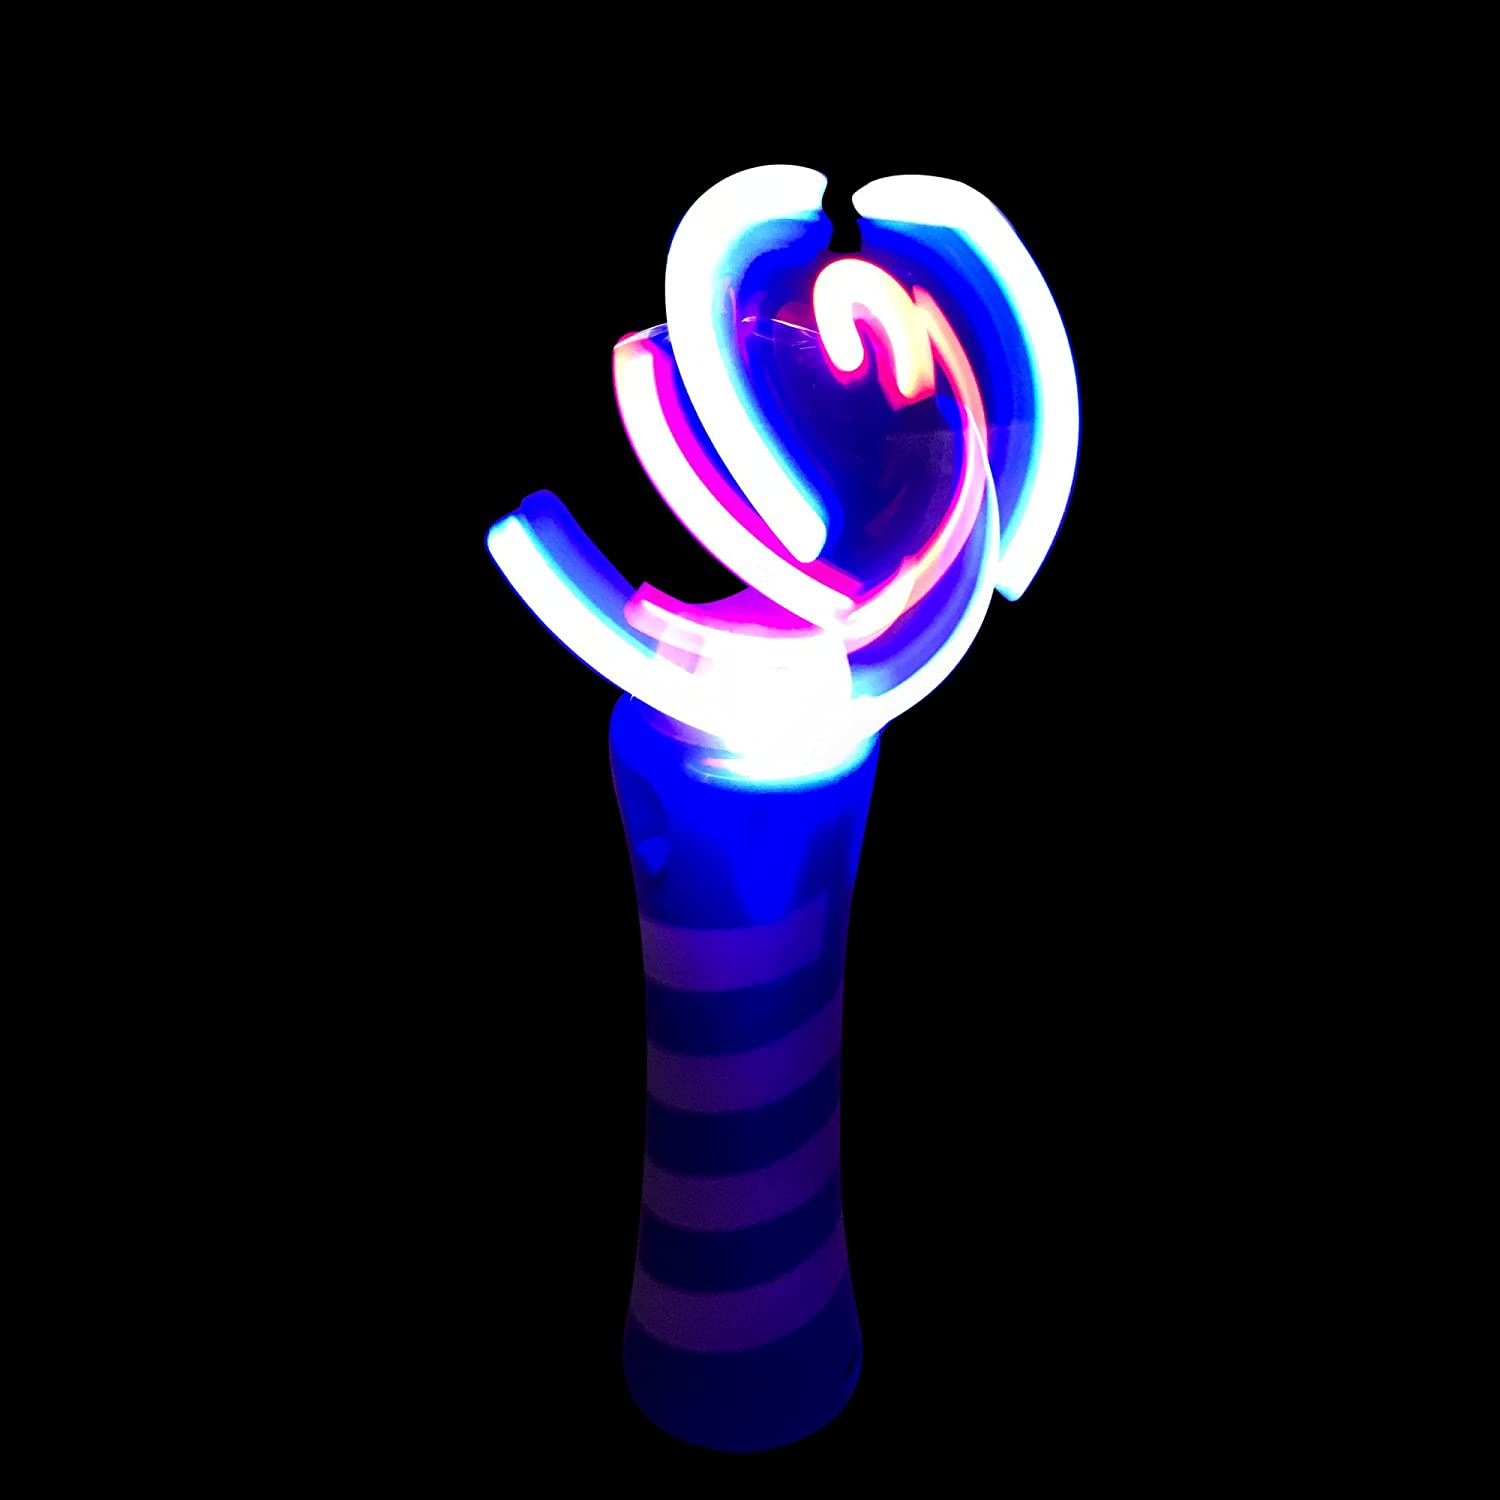 LED Wand glow stick Non-Toxic Magic Wands red Birthday Magic Wand Toy LilPals LED DTY Wand Windmill Toy Halloween Costumes Ideal for Parties LED Toys Magic Wand Toy Wand